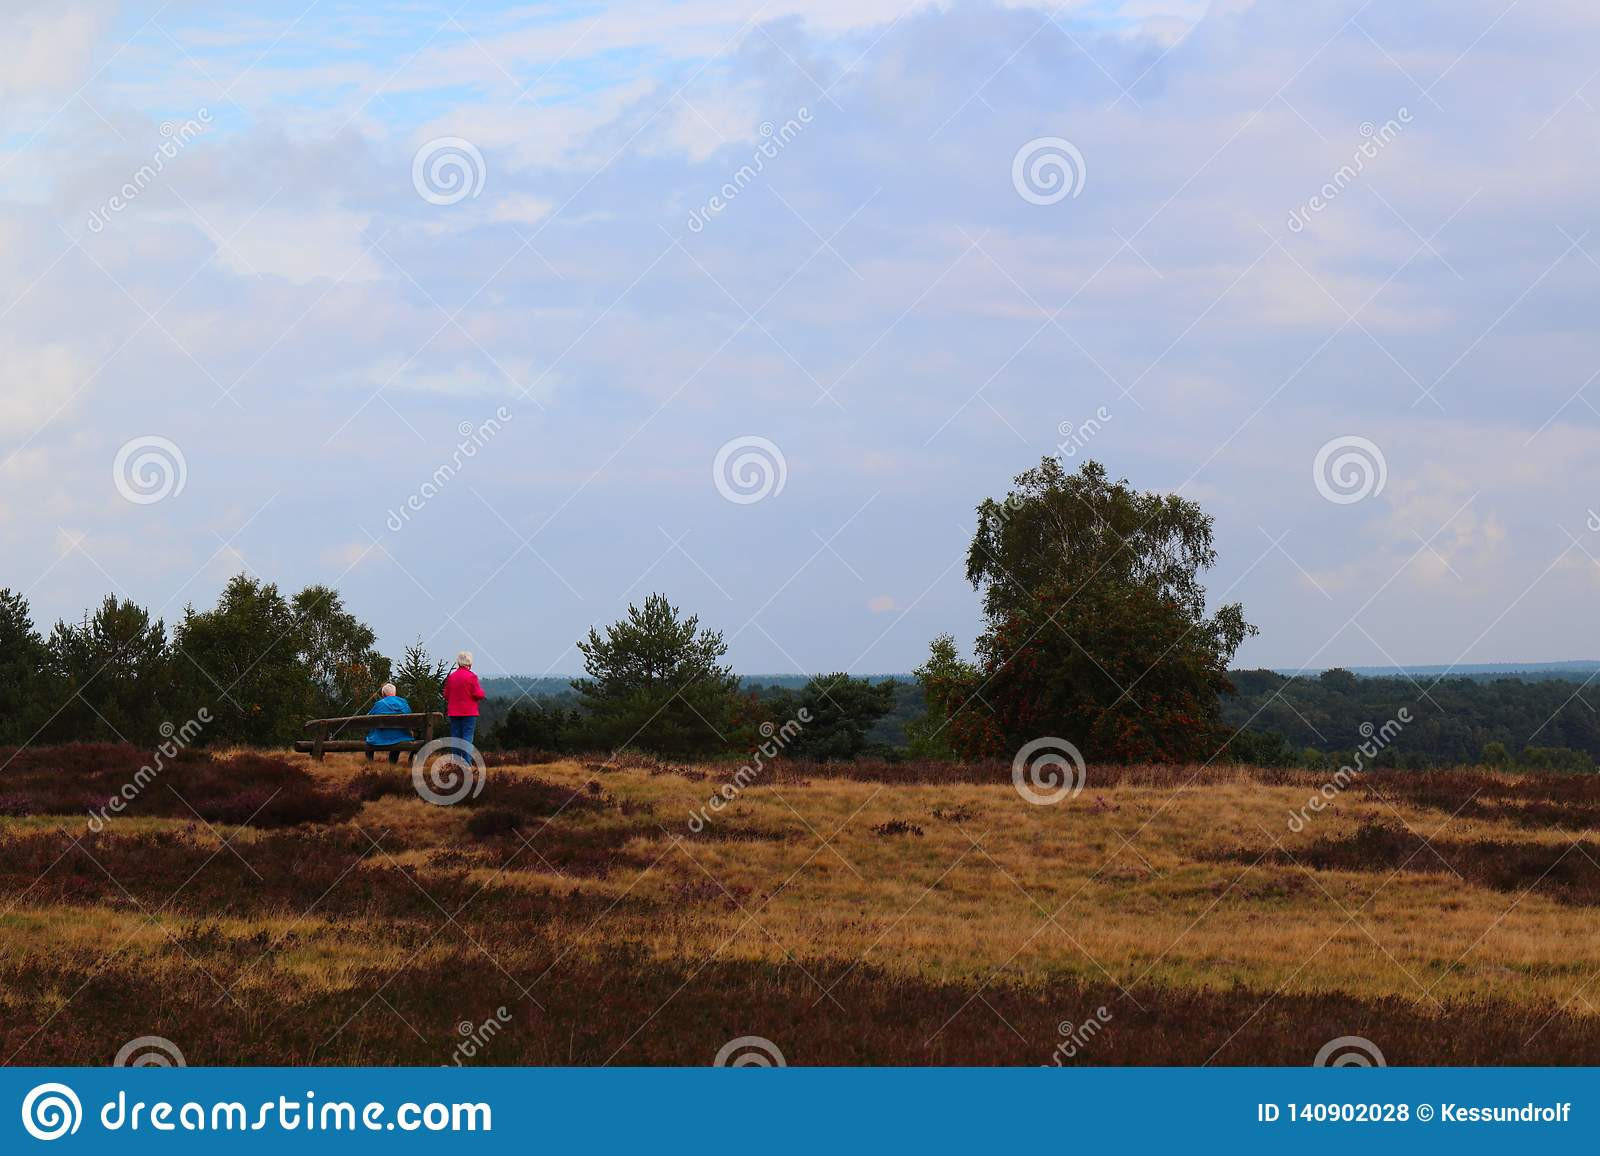 Couple in moorland taking a rest